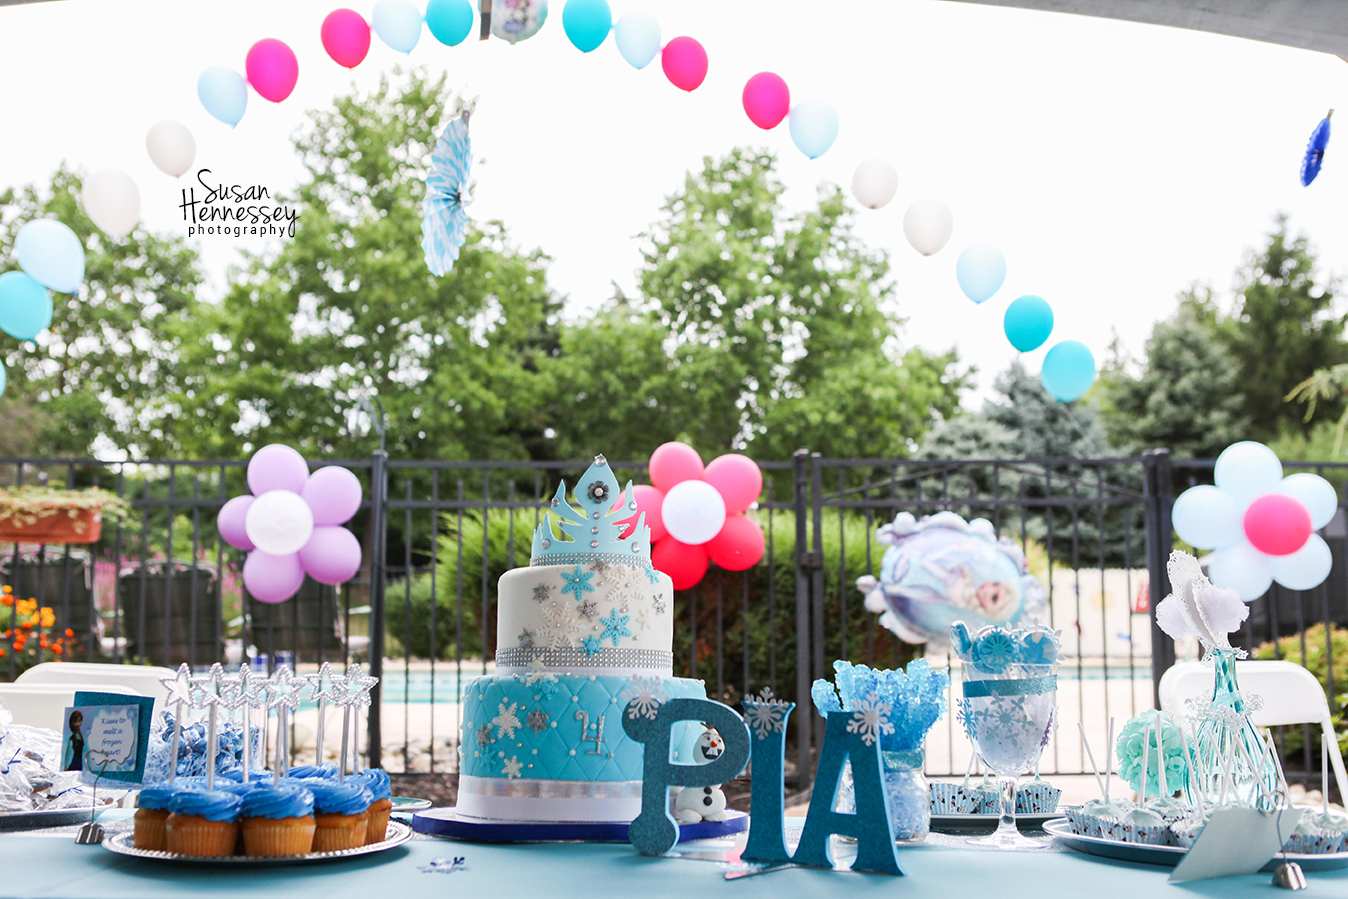 SusanHennessey FrozenParty Blog 14 15 17 18